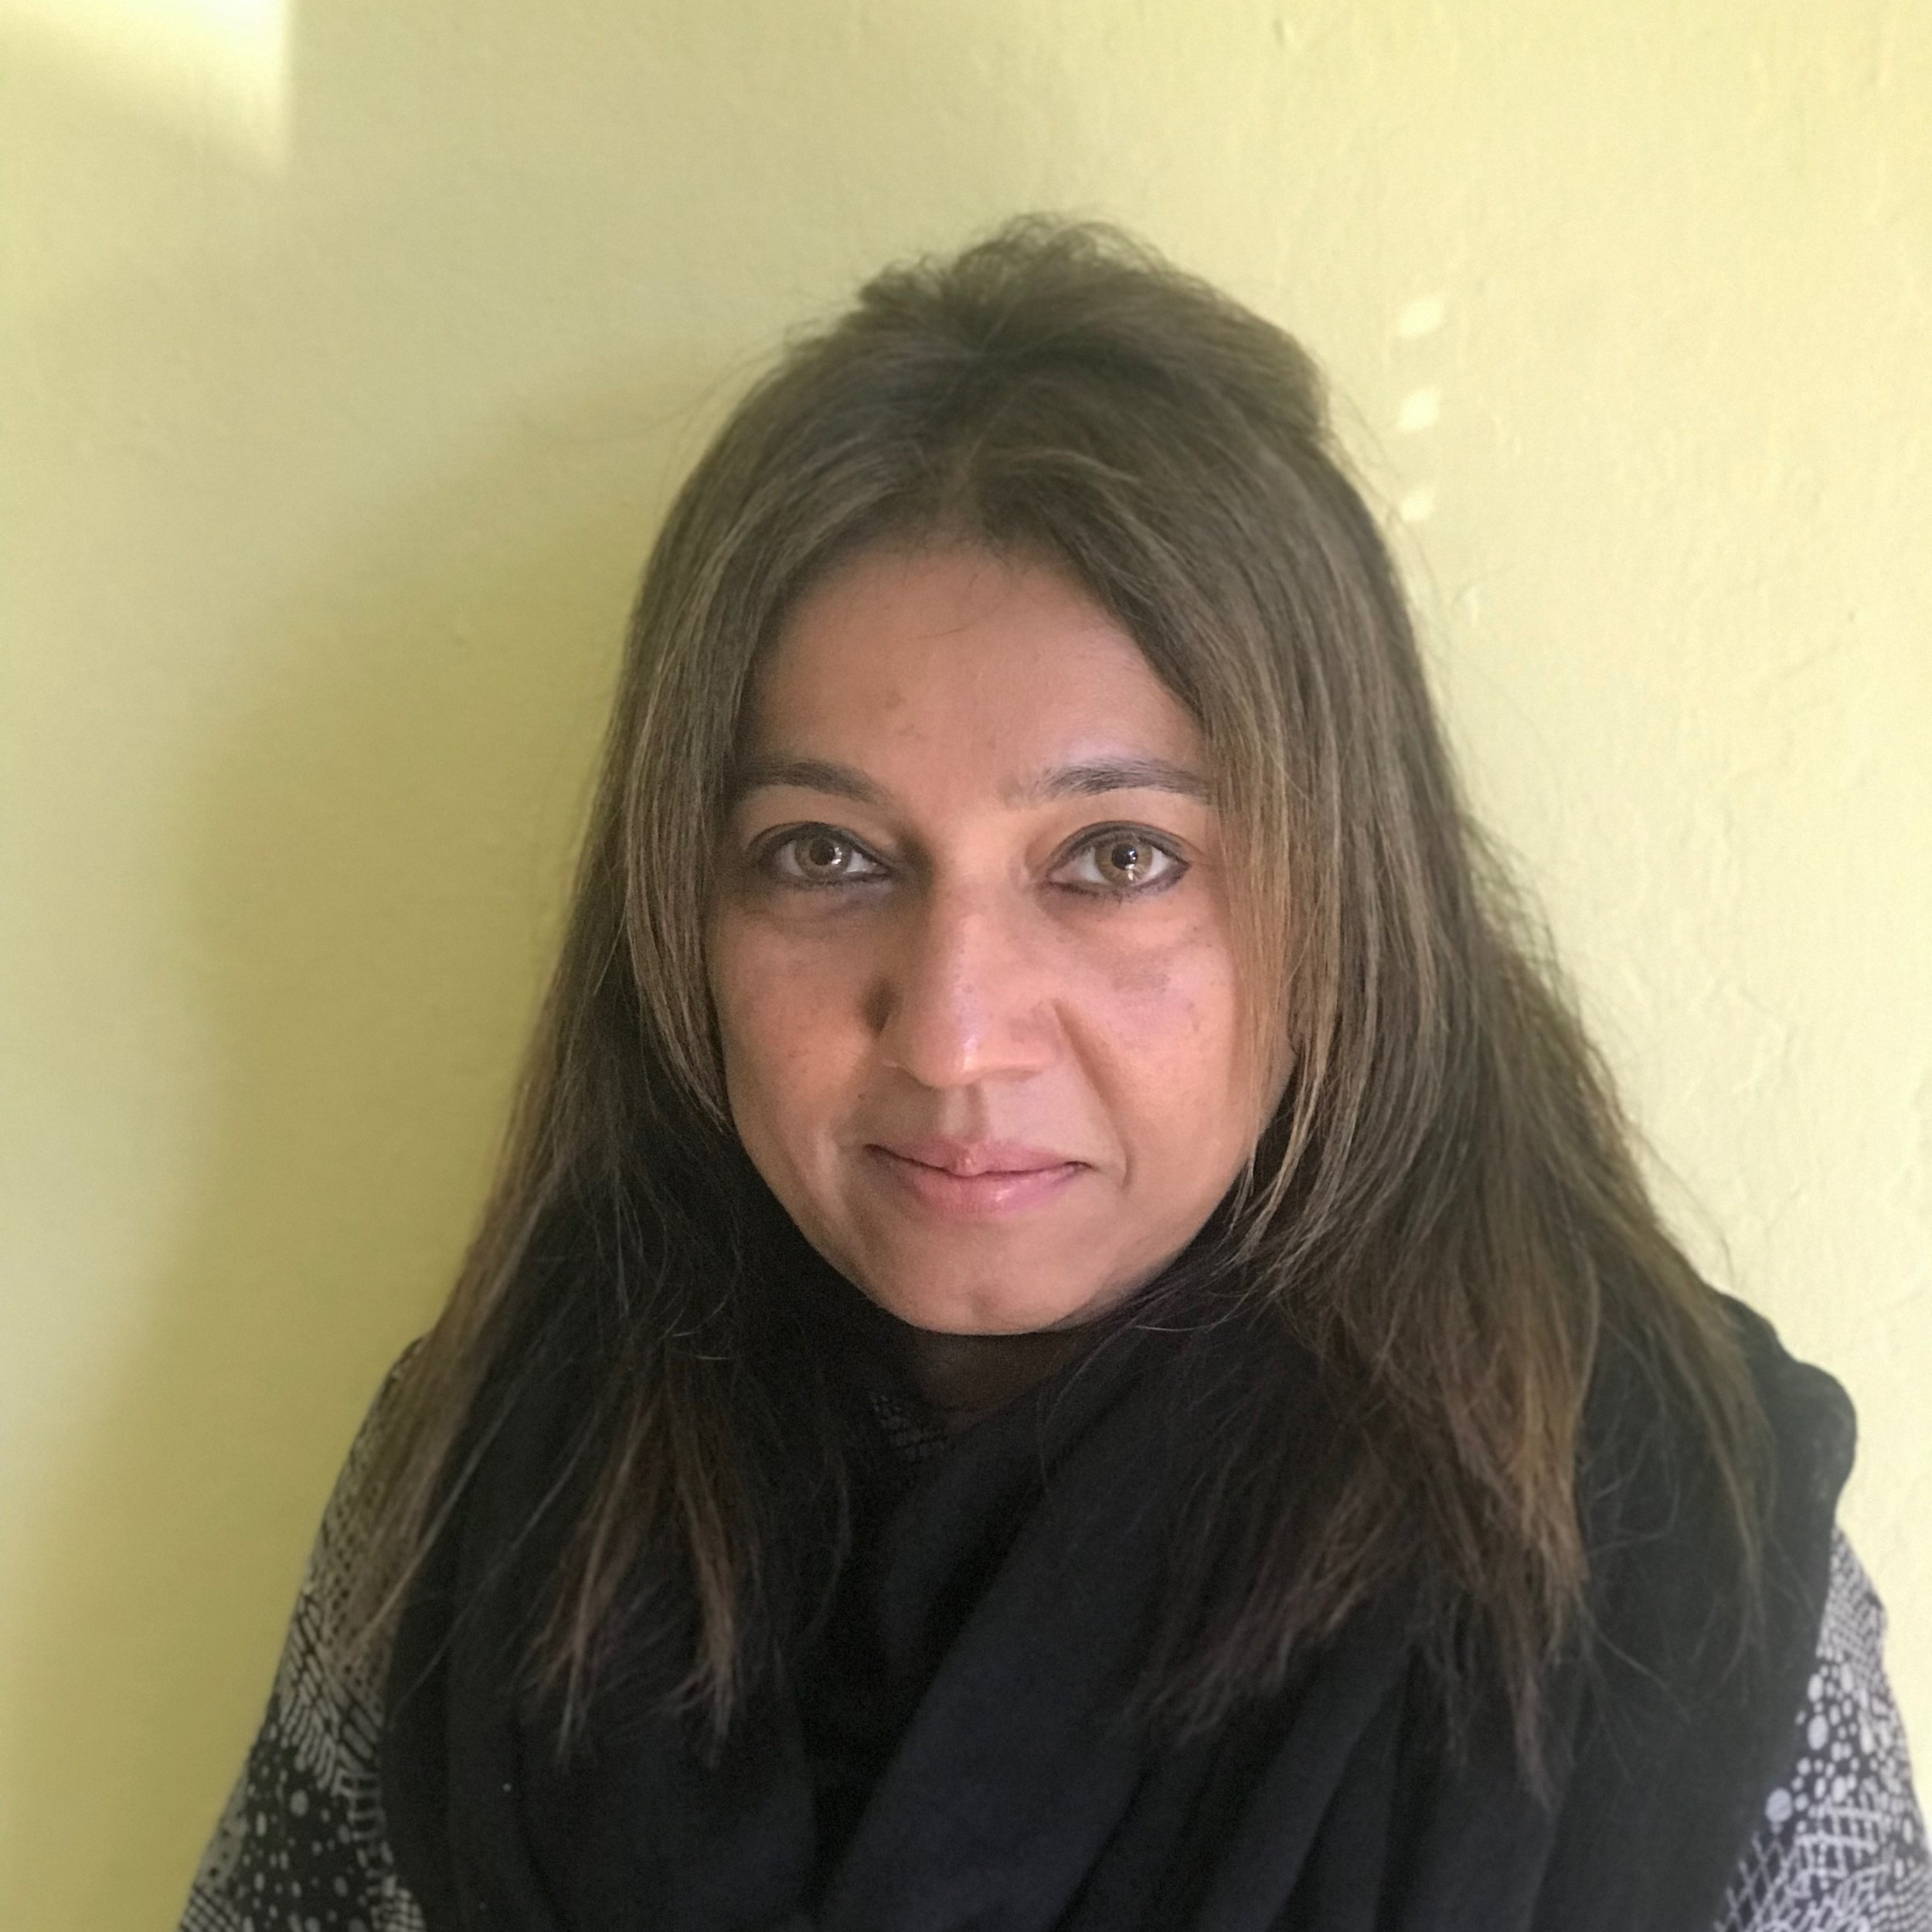 Image of Shakila. She is smiling and standing on front of a yellow background. She is wearing a black and white shirt with a black scarf.